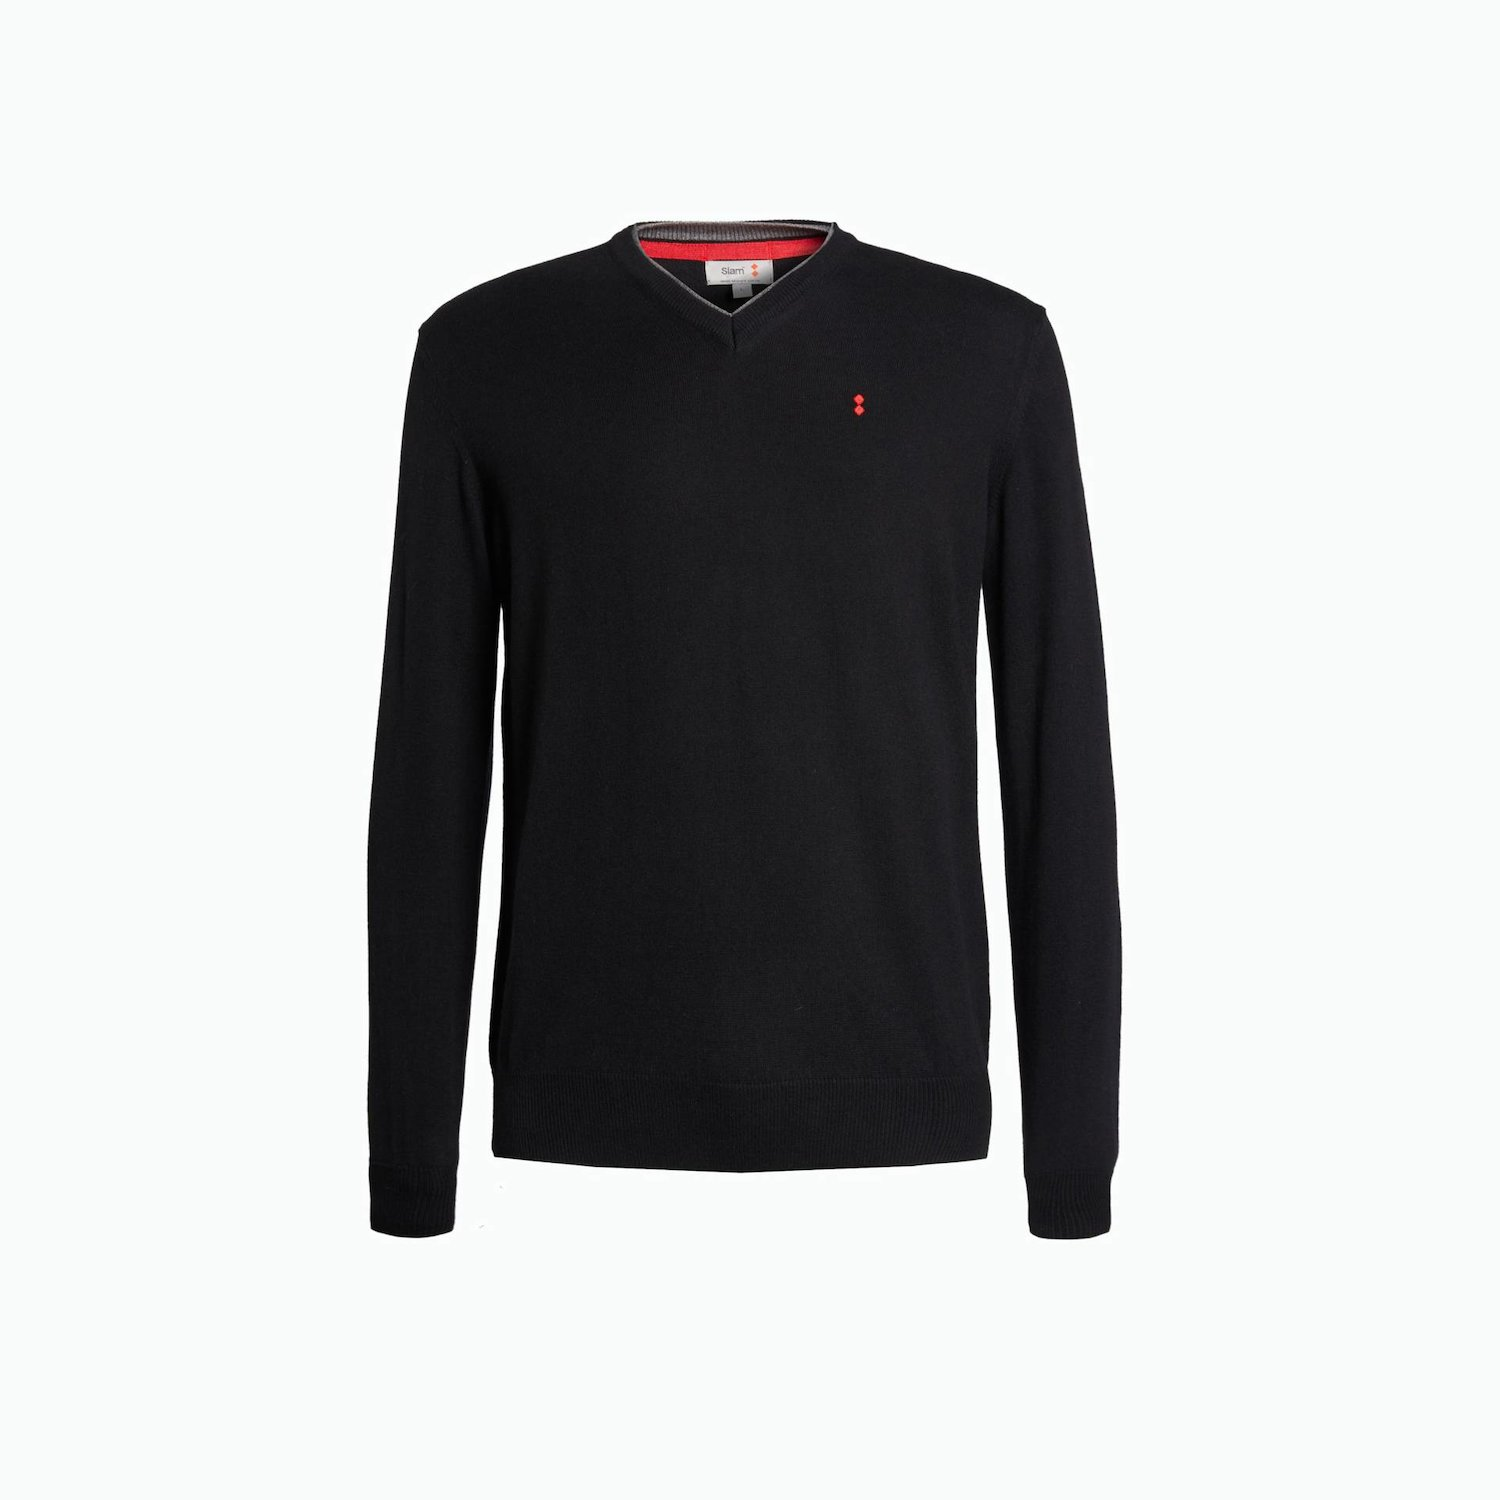 B139 sweater - Black